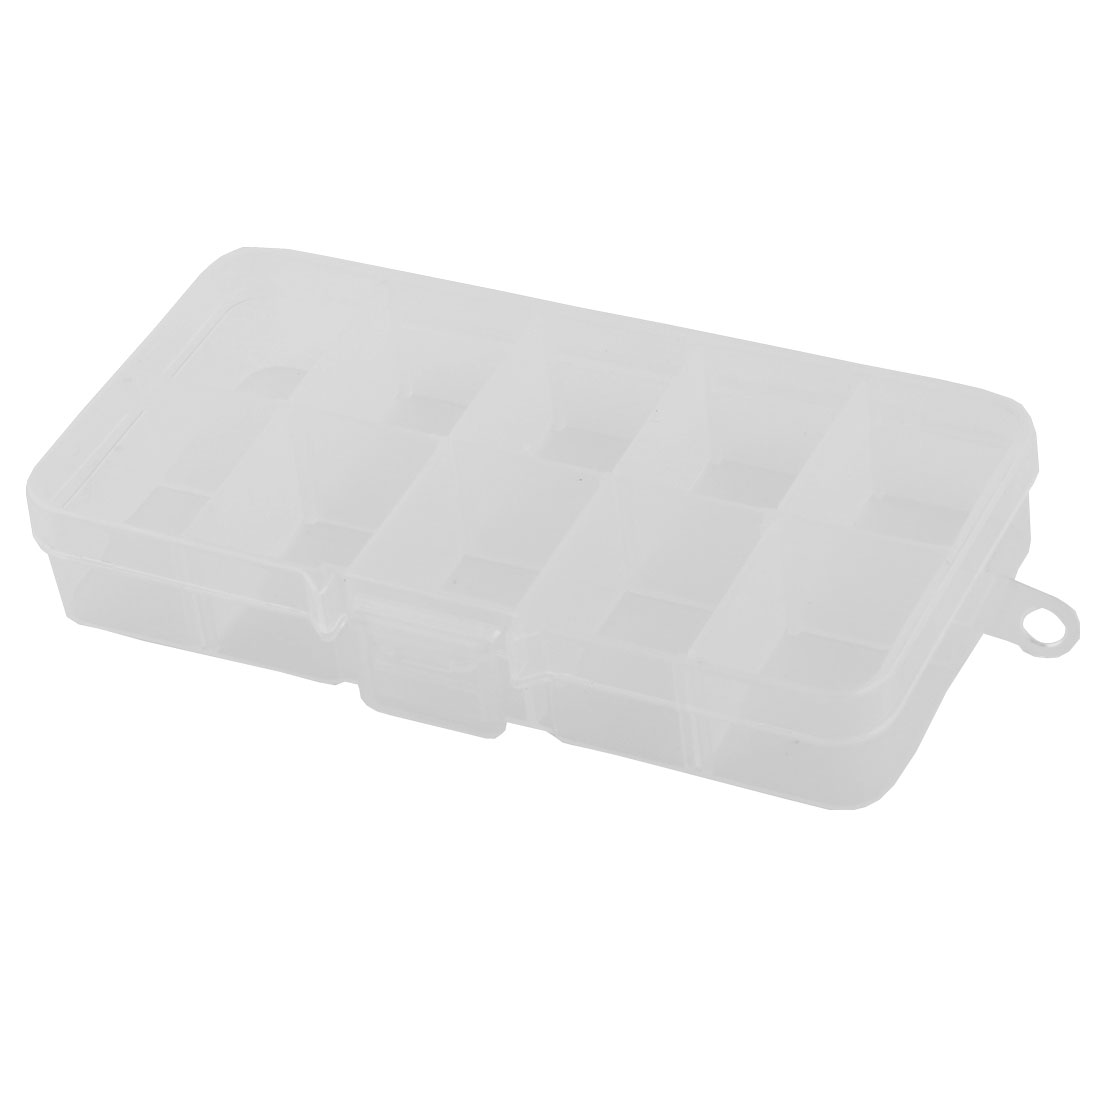 Plastic 10 Compartments Jewelry Earring Nail Art Tip Storage Organizer Box Case